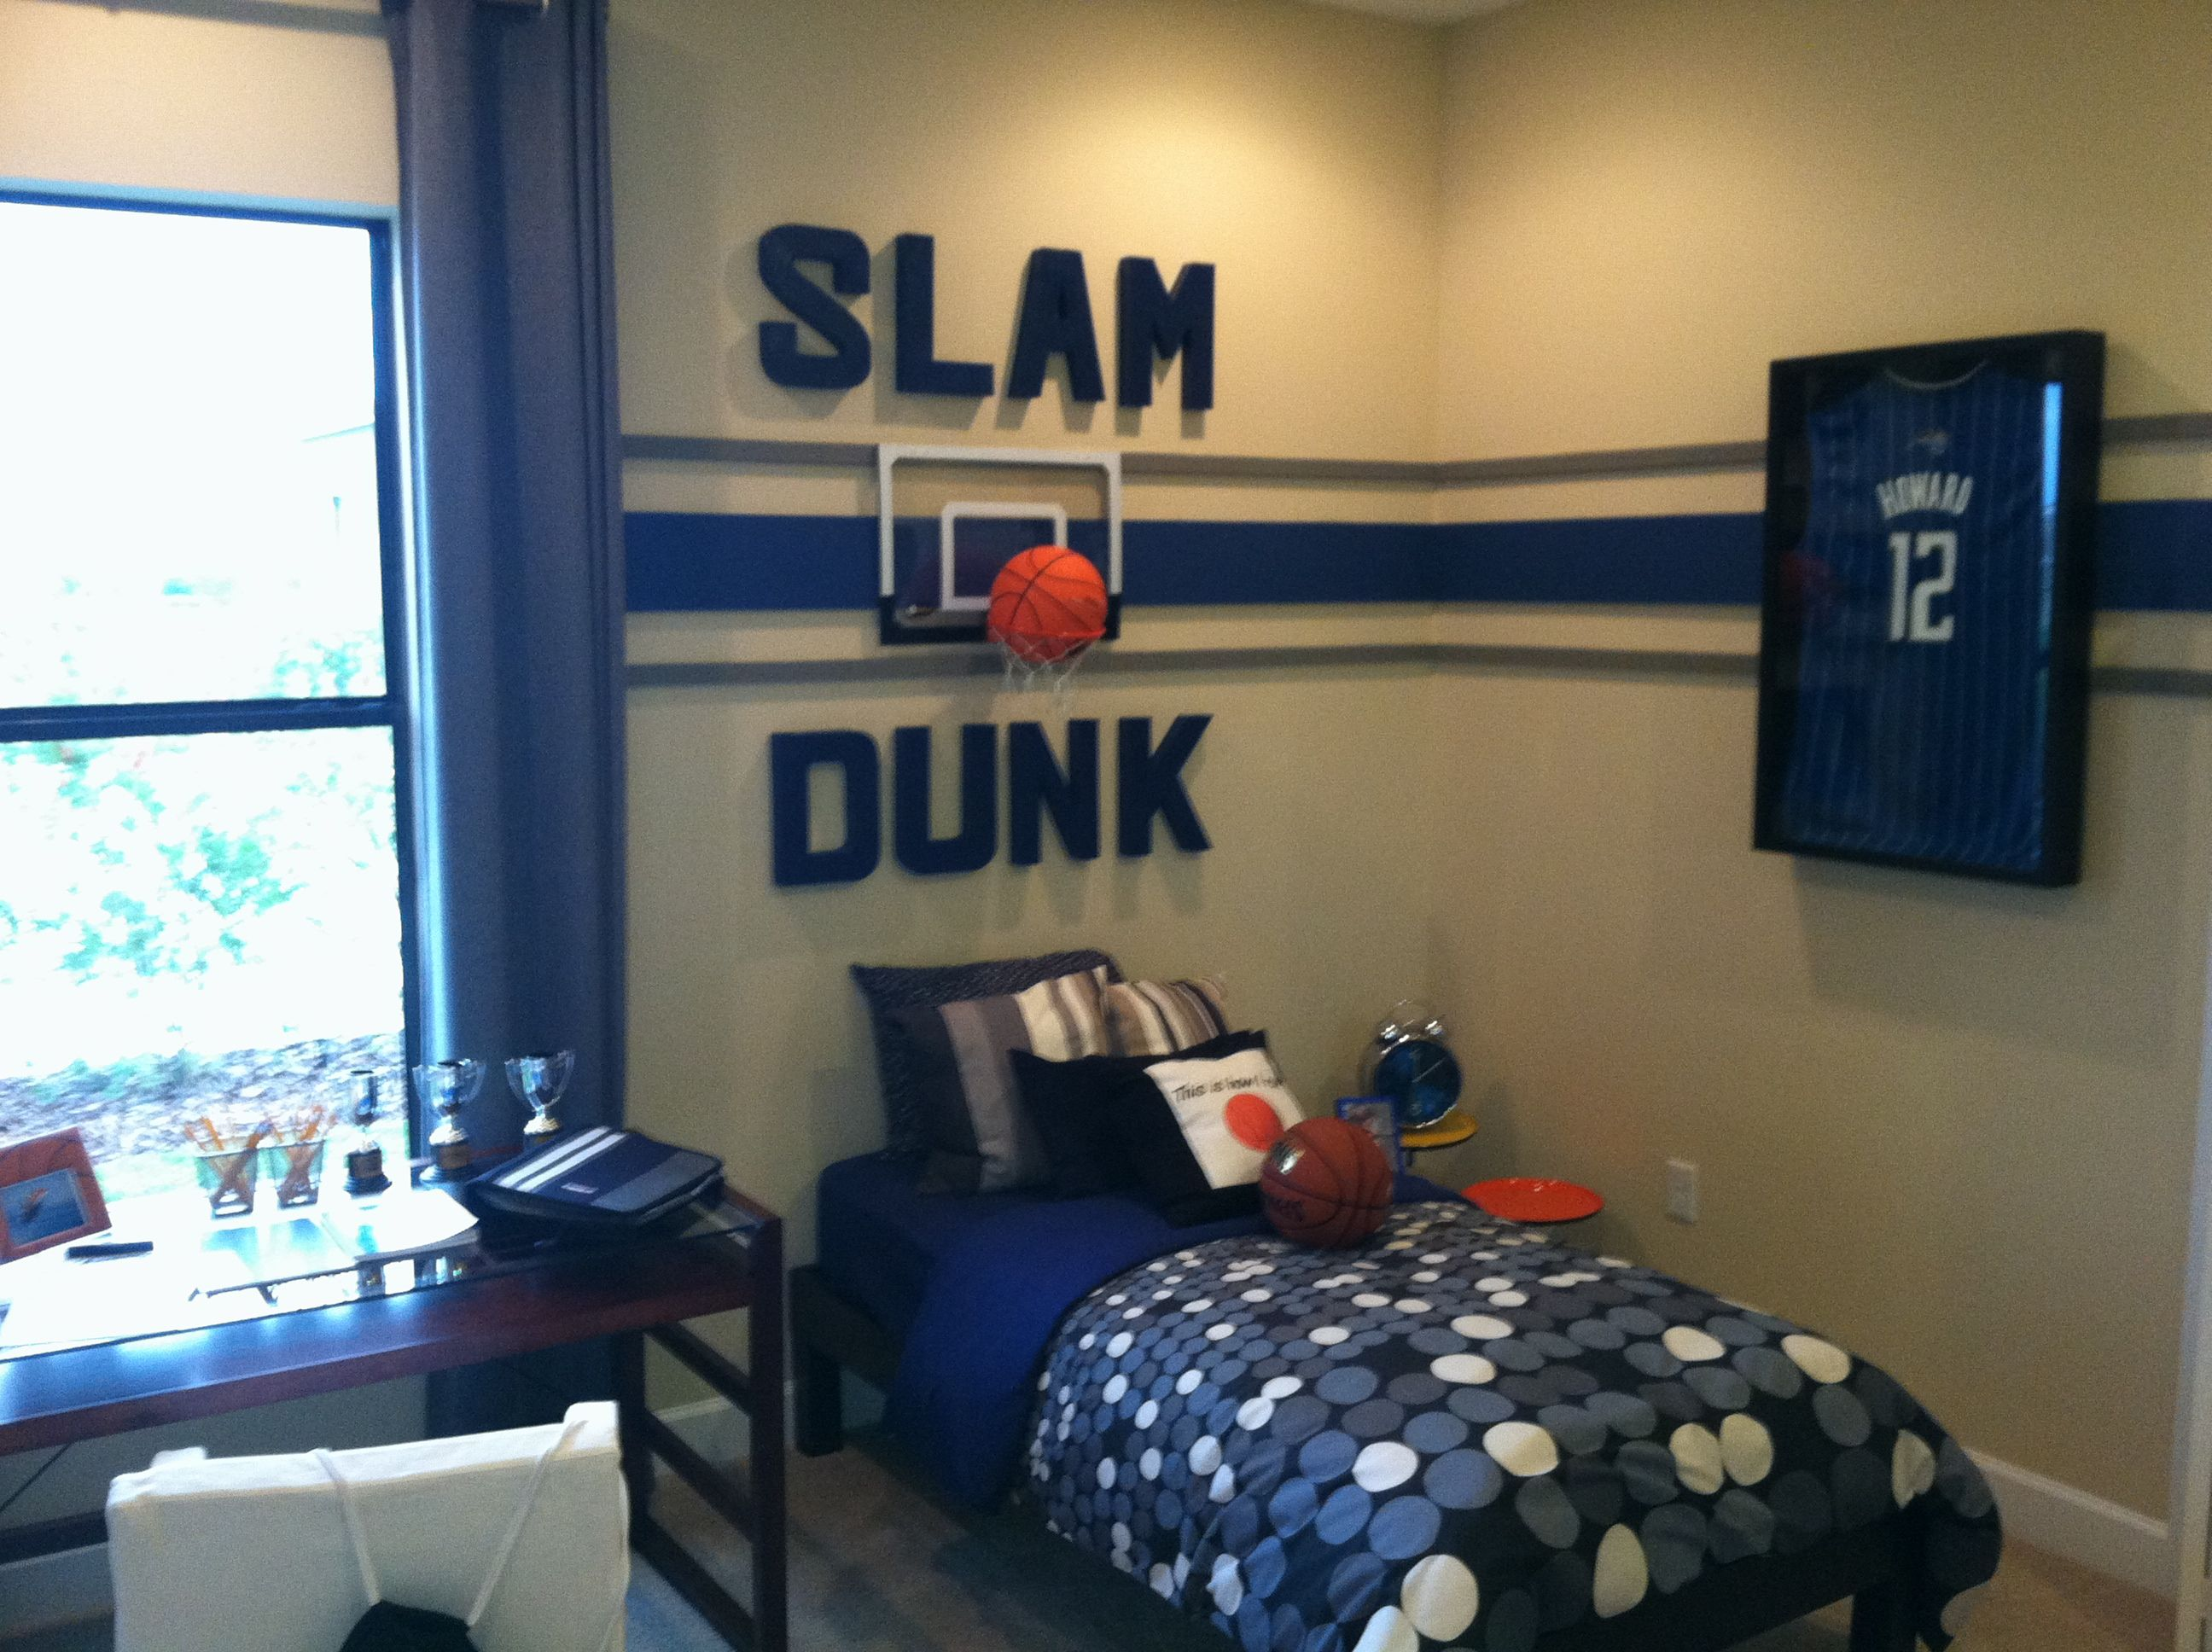 Boys Sports Bedroom. Nice Boys Sports Room Ideas For Bedroom Decorating Fun Themed Designs Kids  toddler boy rooms